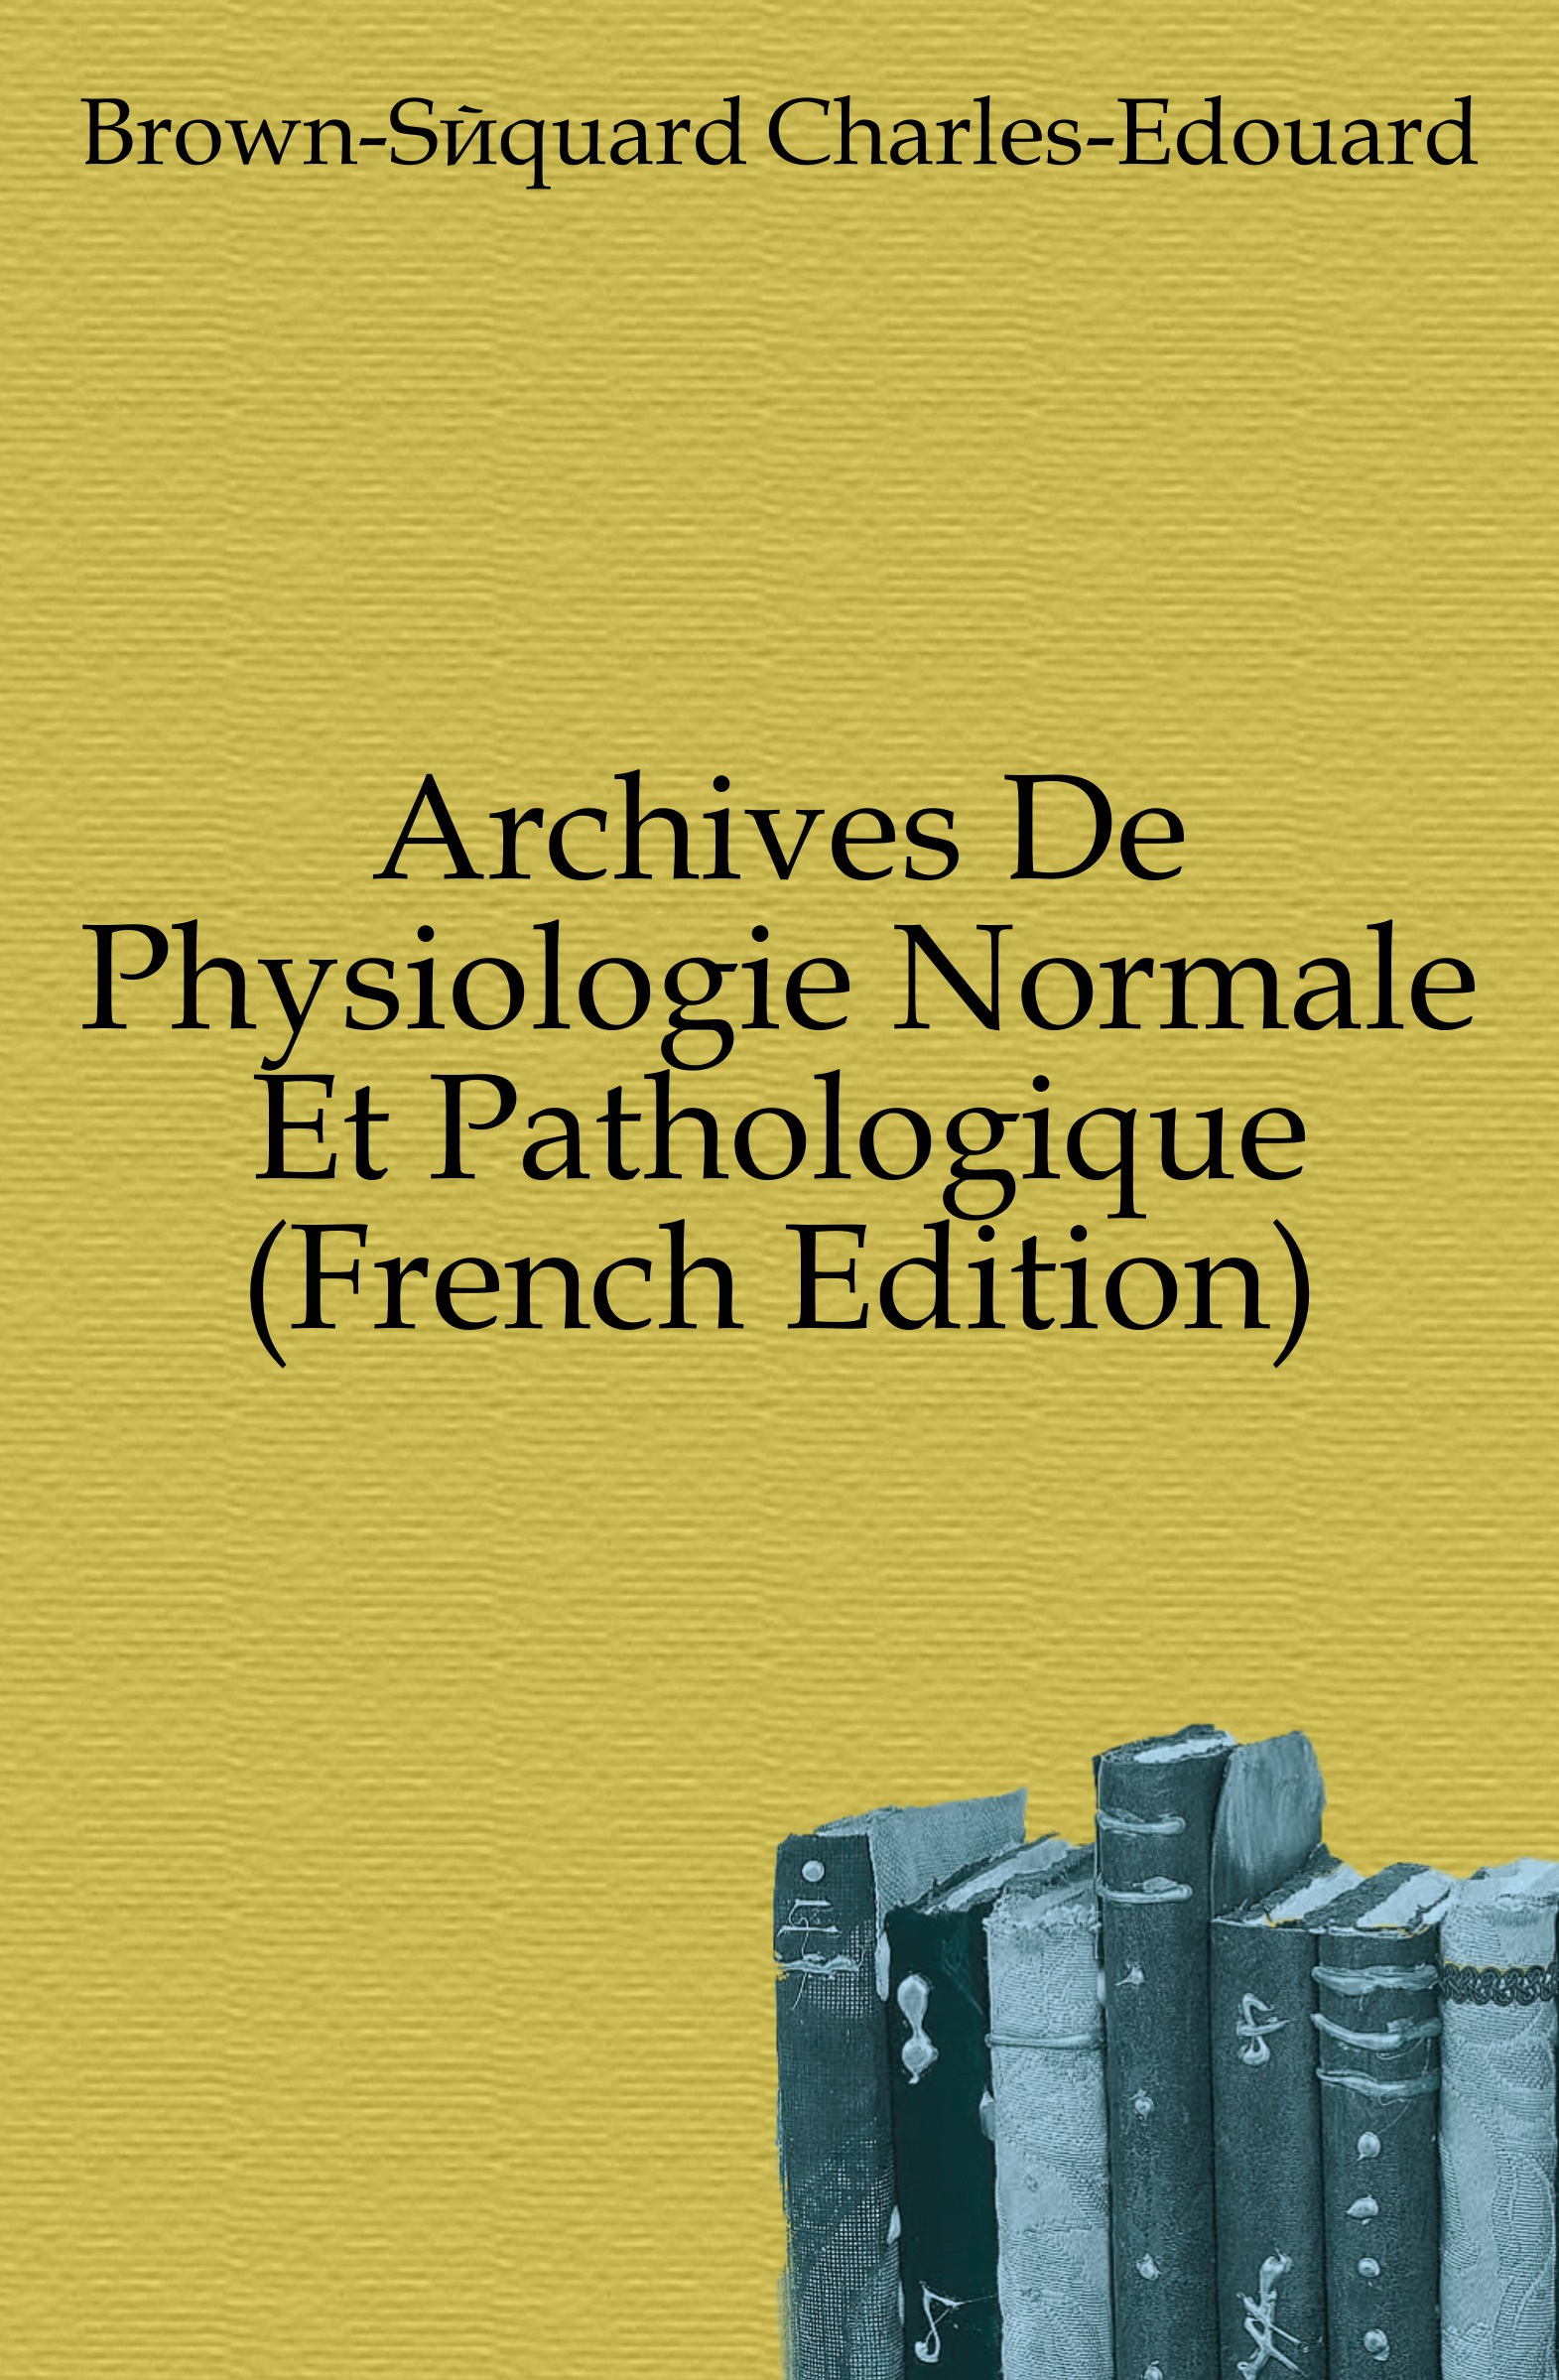 Brown-Séquard Charles-Edouard Archives De Physiologie Normale Et Pathologique (French Edition) louis jacques bégin traite de physiologie pathologique t 2